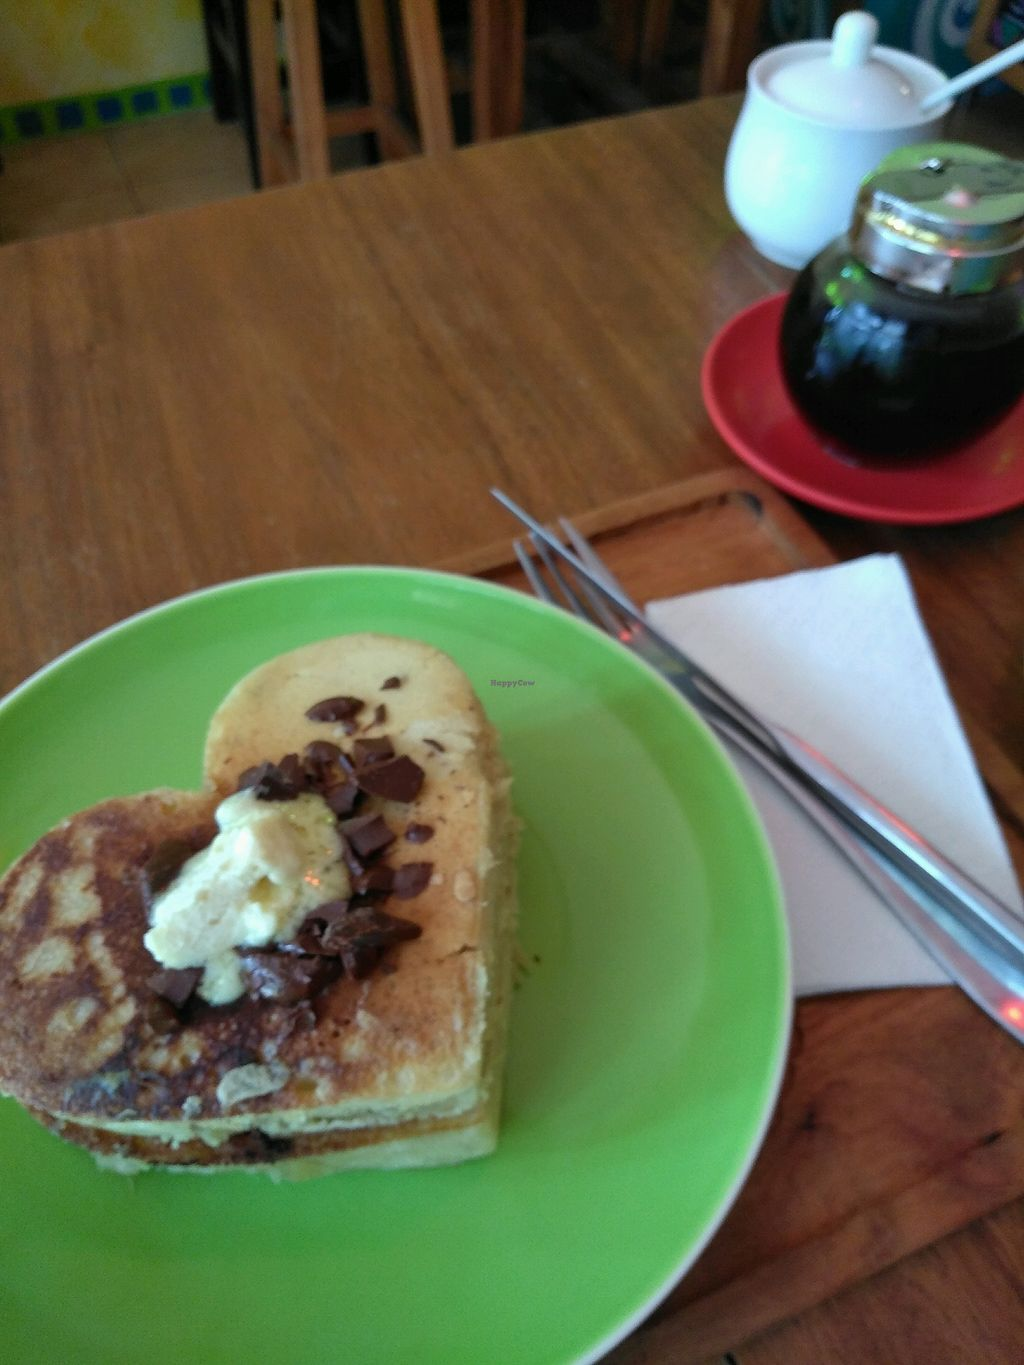 """Photo of The Kismet Cafe  by <a href=""""/members/profile/RenataScotti"""">RenataScotti</a> <br/>vegan chocolate chip pancakes  <br/> March 9, 2018  - <a href='/contact/abuse/image/58429/368325'>Report</a>"""